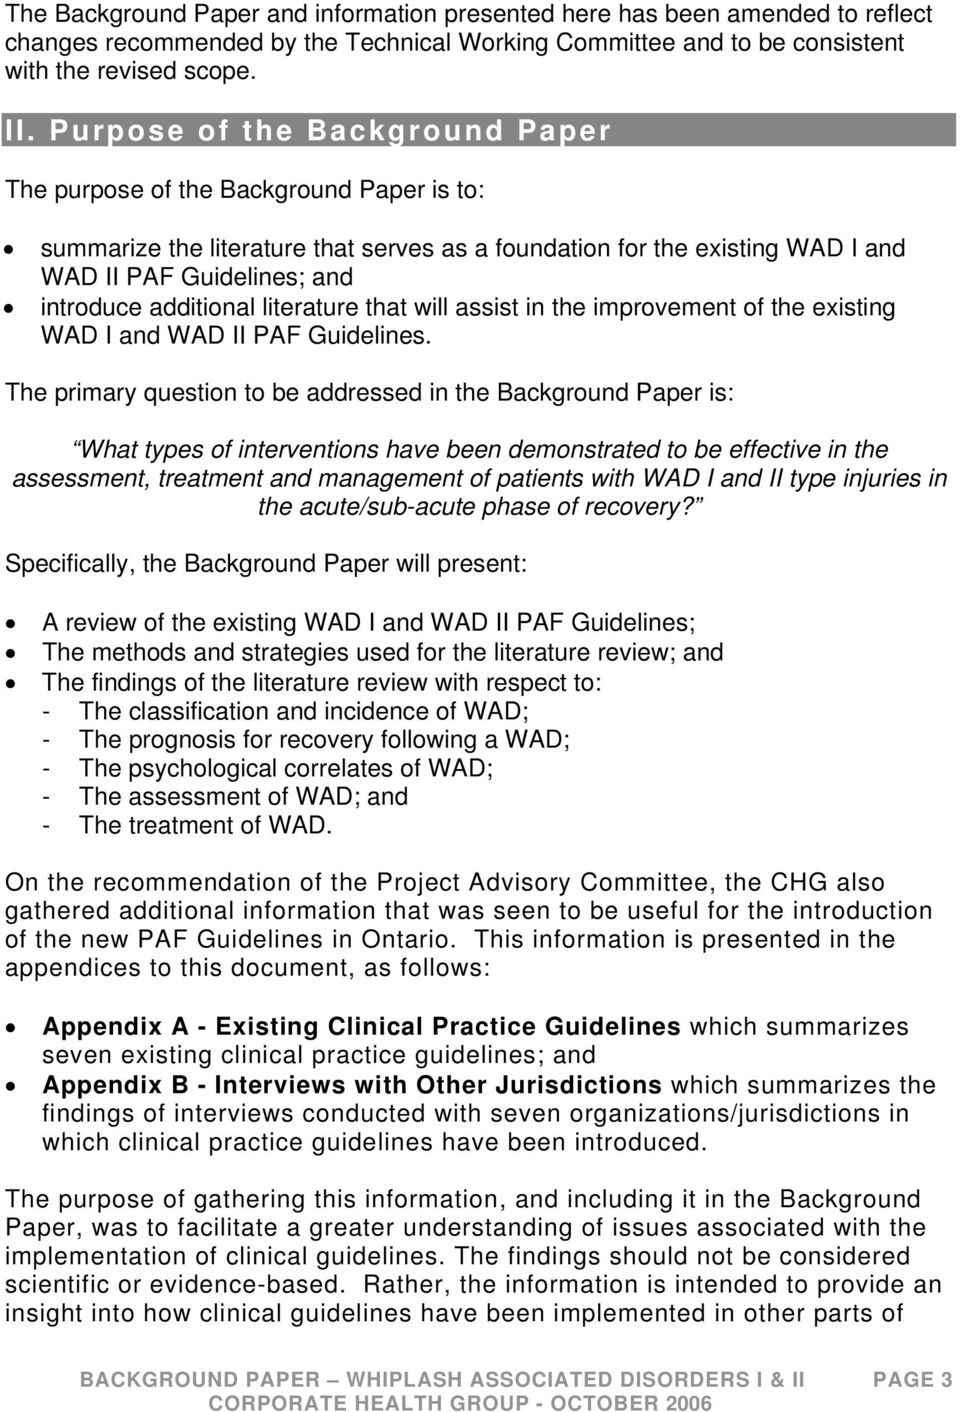 additional literature that will assist in the improvement of the existing WAD I and WAD II PAF Guidelines.